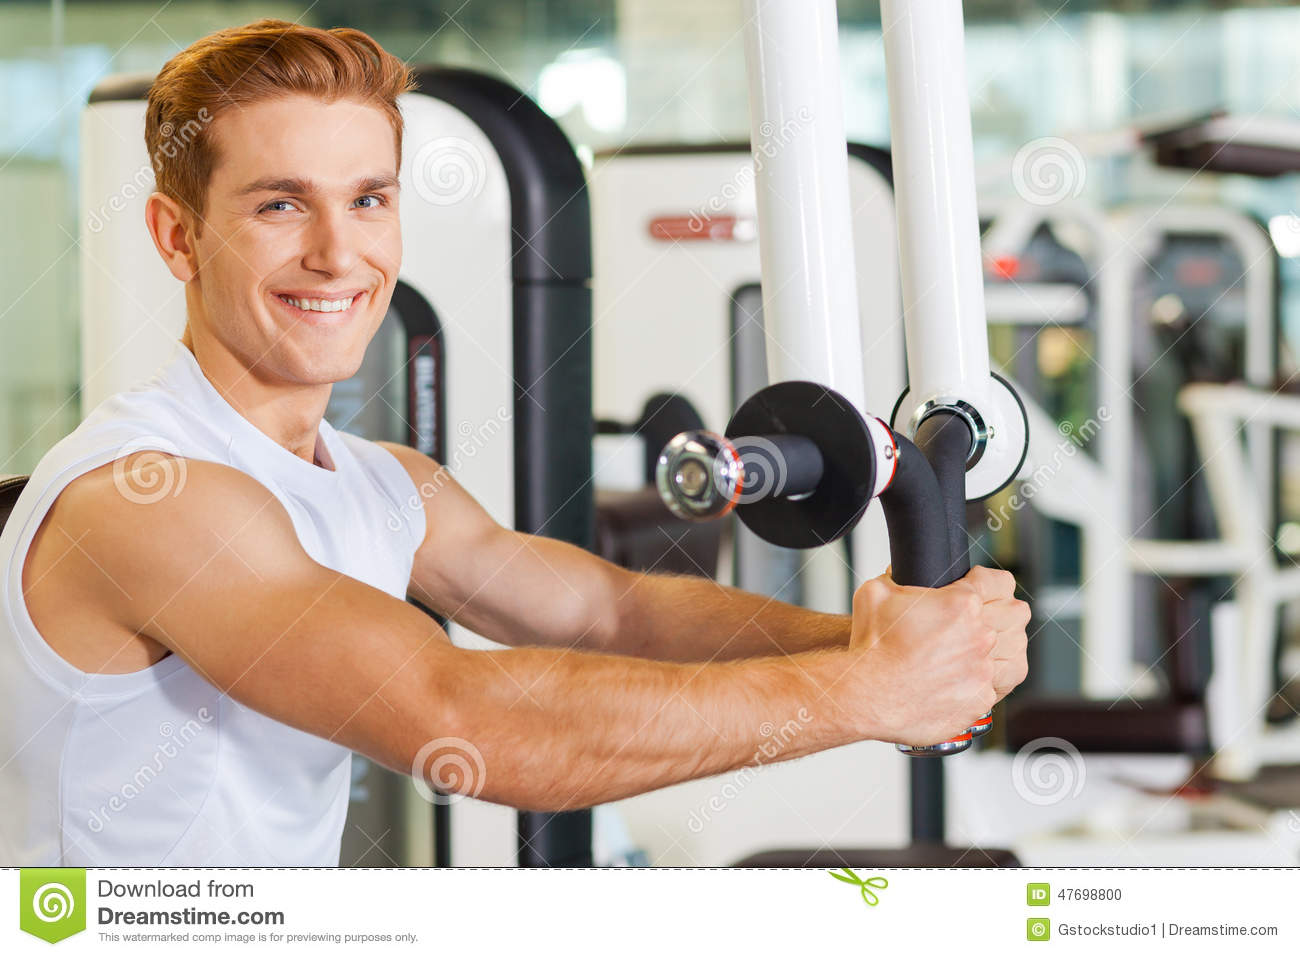 It Is Very Important To Stay Fit. Stock Photo - Image ...